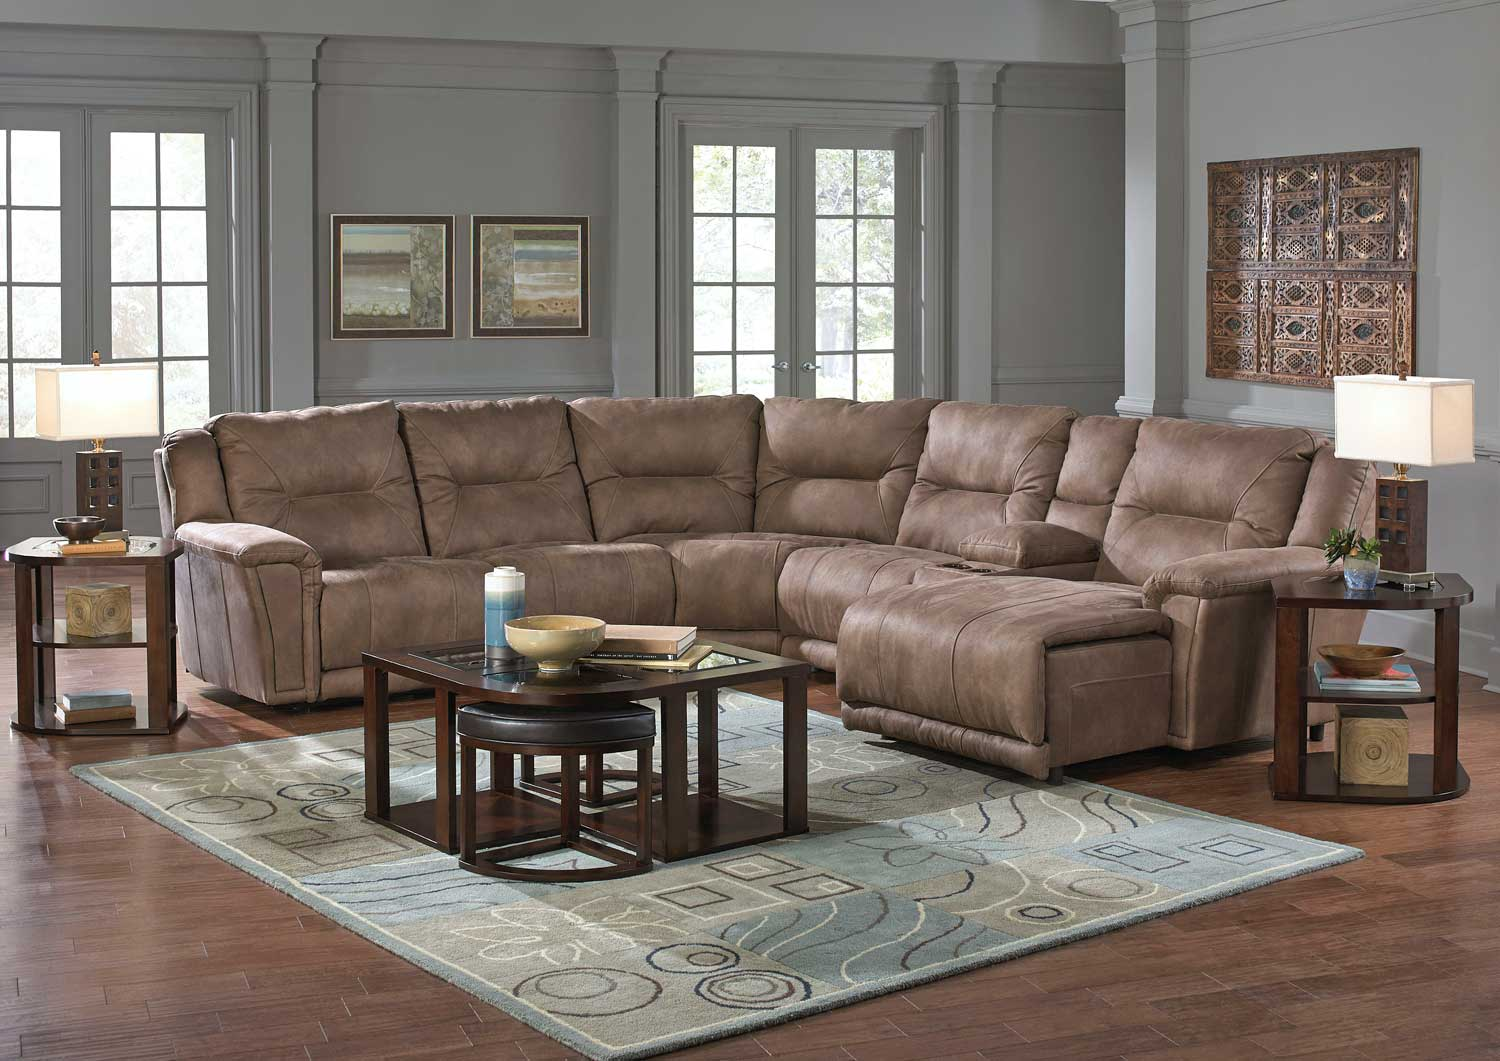 Catnapper Montgomery Sectional Sofa Set 1 Cement Cn 175 Sect Sofa Set 1 Cement At Homelement Com